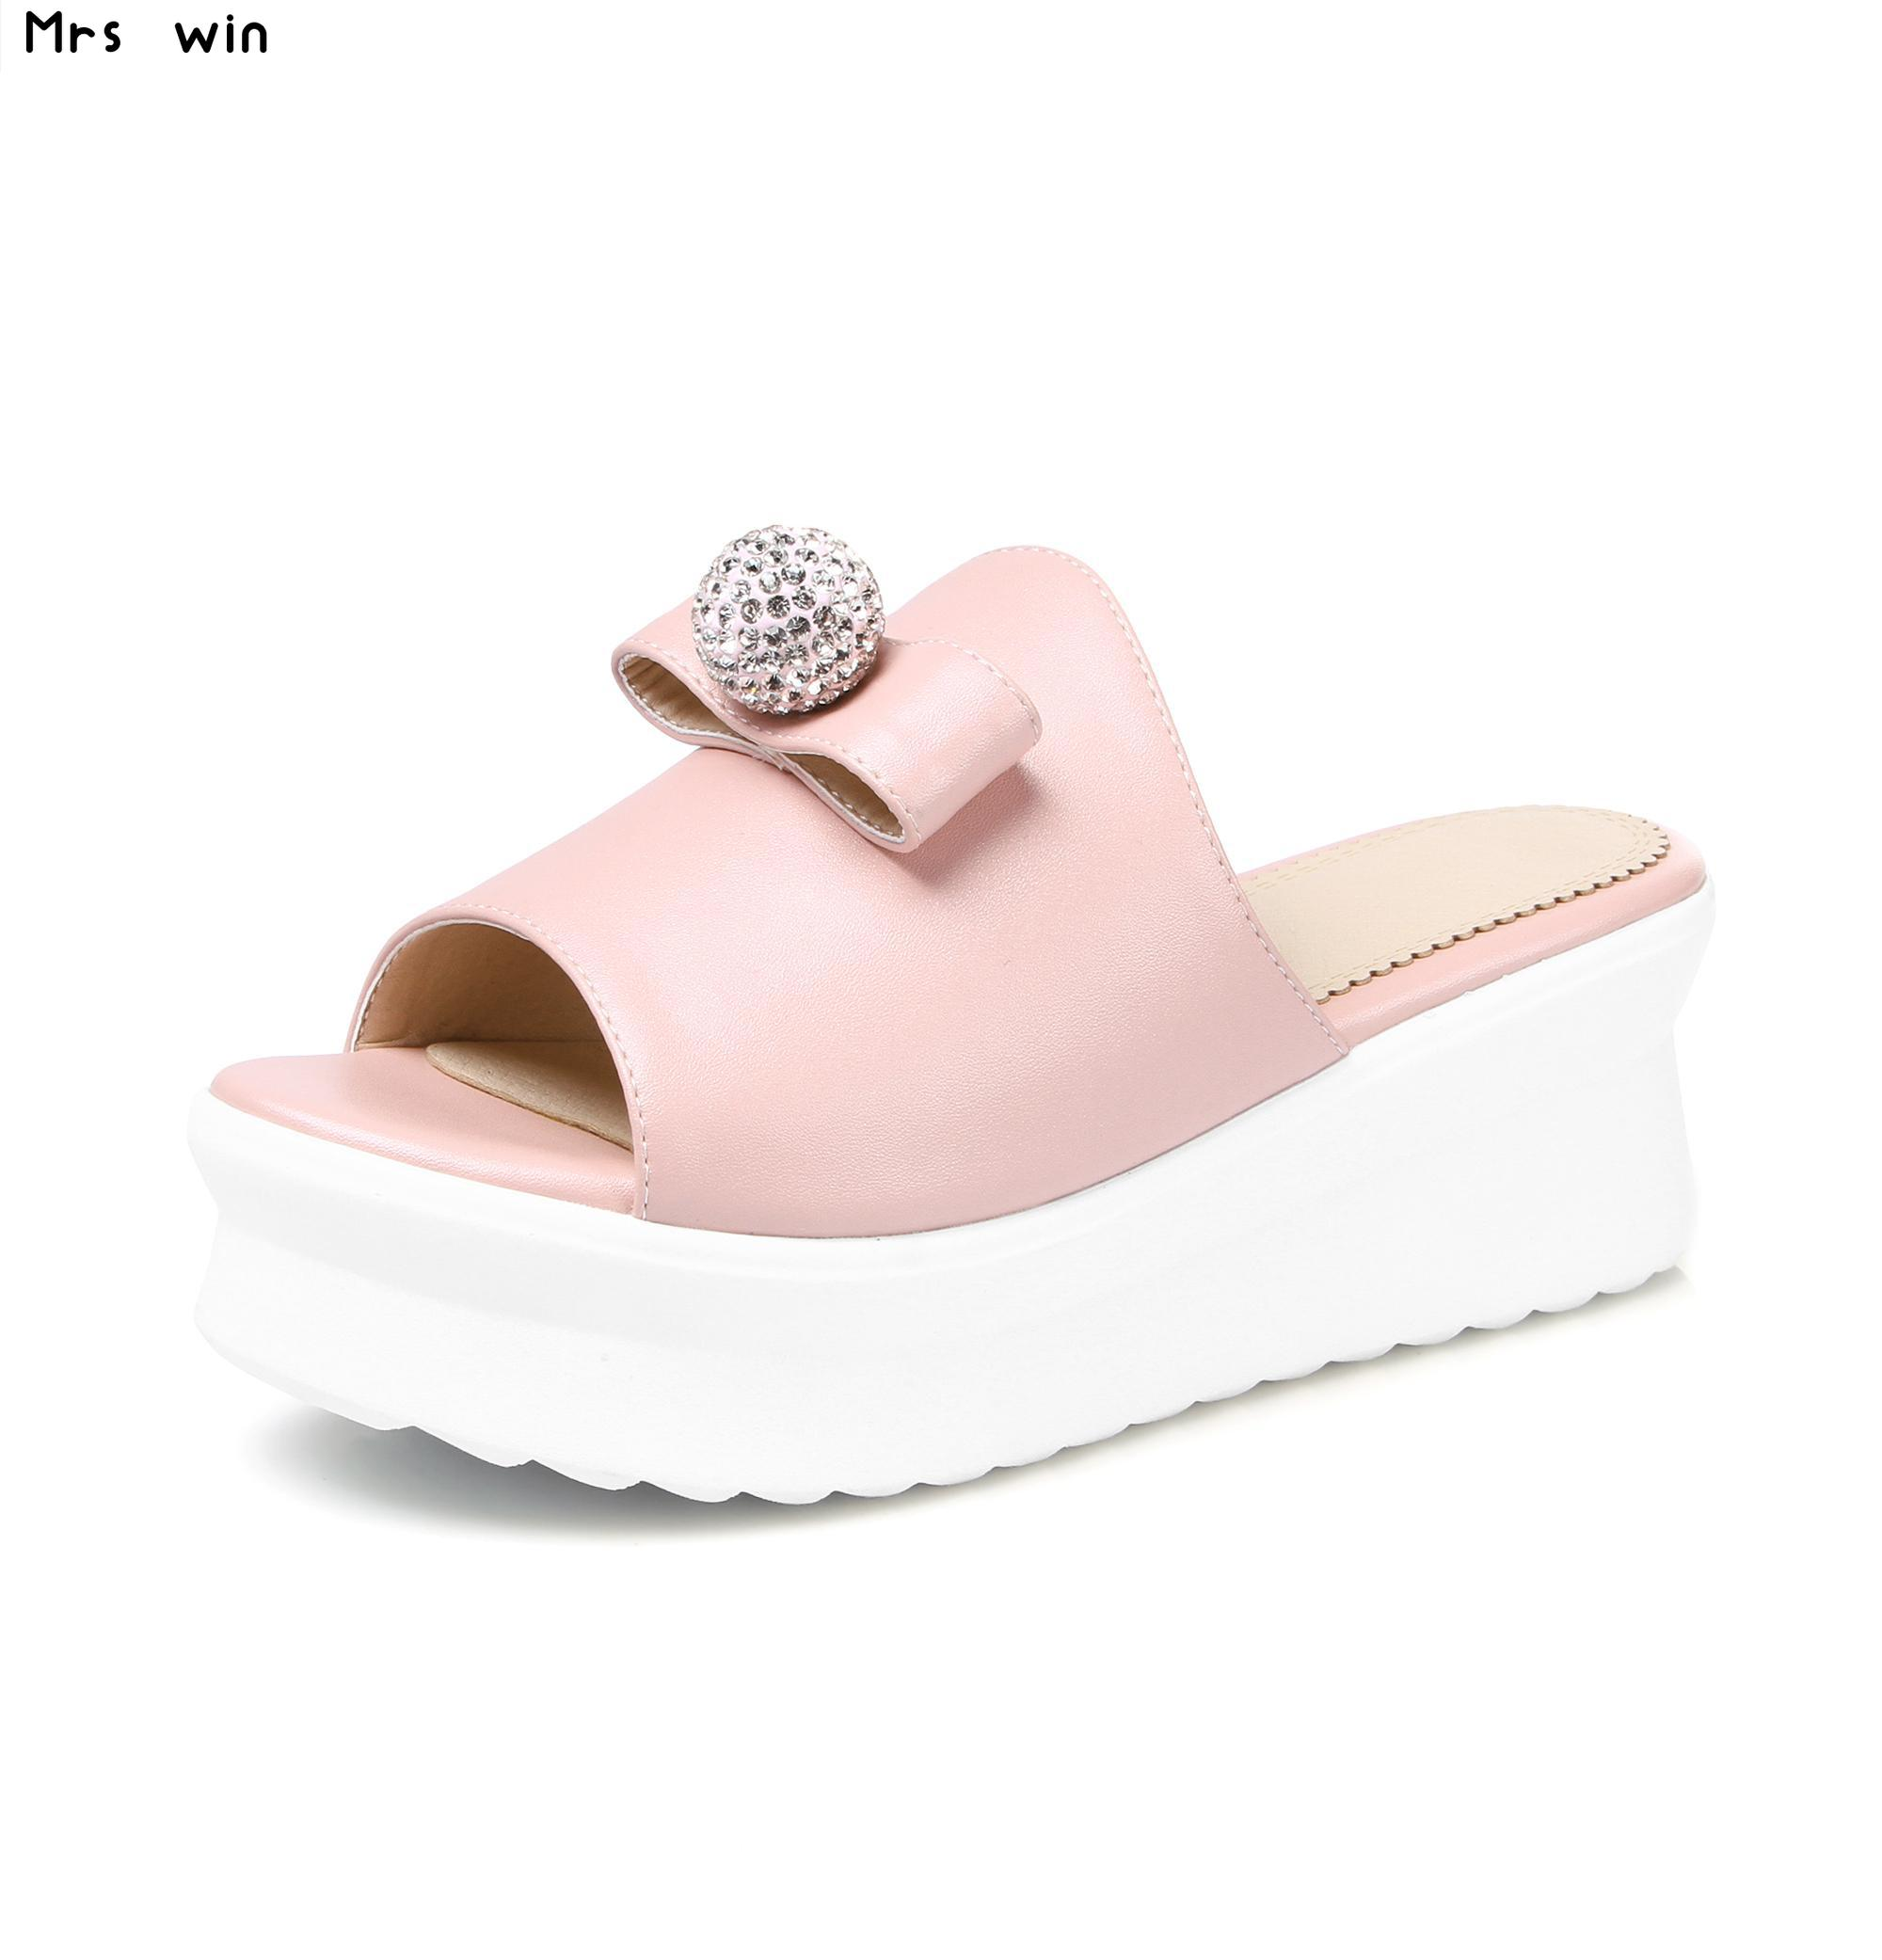 2017 New fashion women sandals wedges slippers casual women slipper summer platform shoes woman blue pink white phyanic 2017 gladiator sandals gold silver shoes woman summer platform wedges glitters creepers casual women shoes phy3323